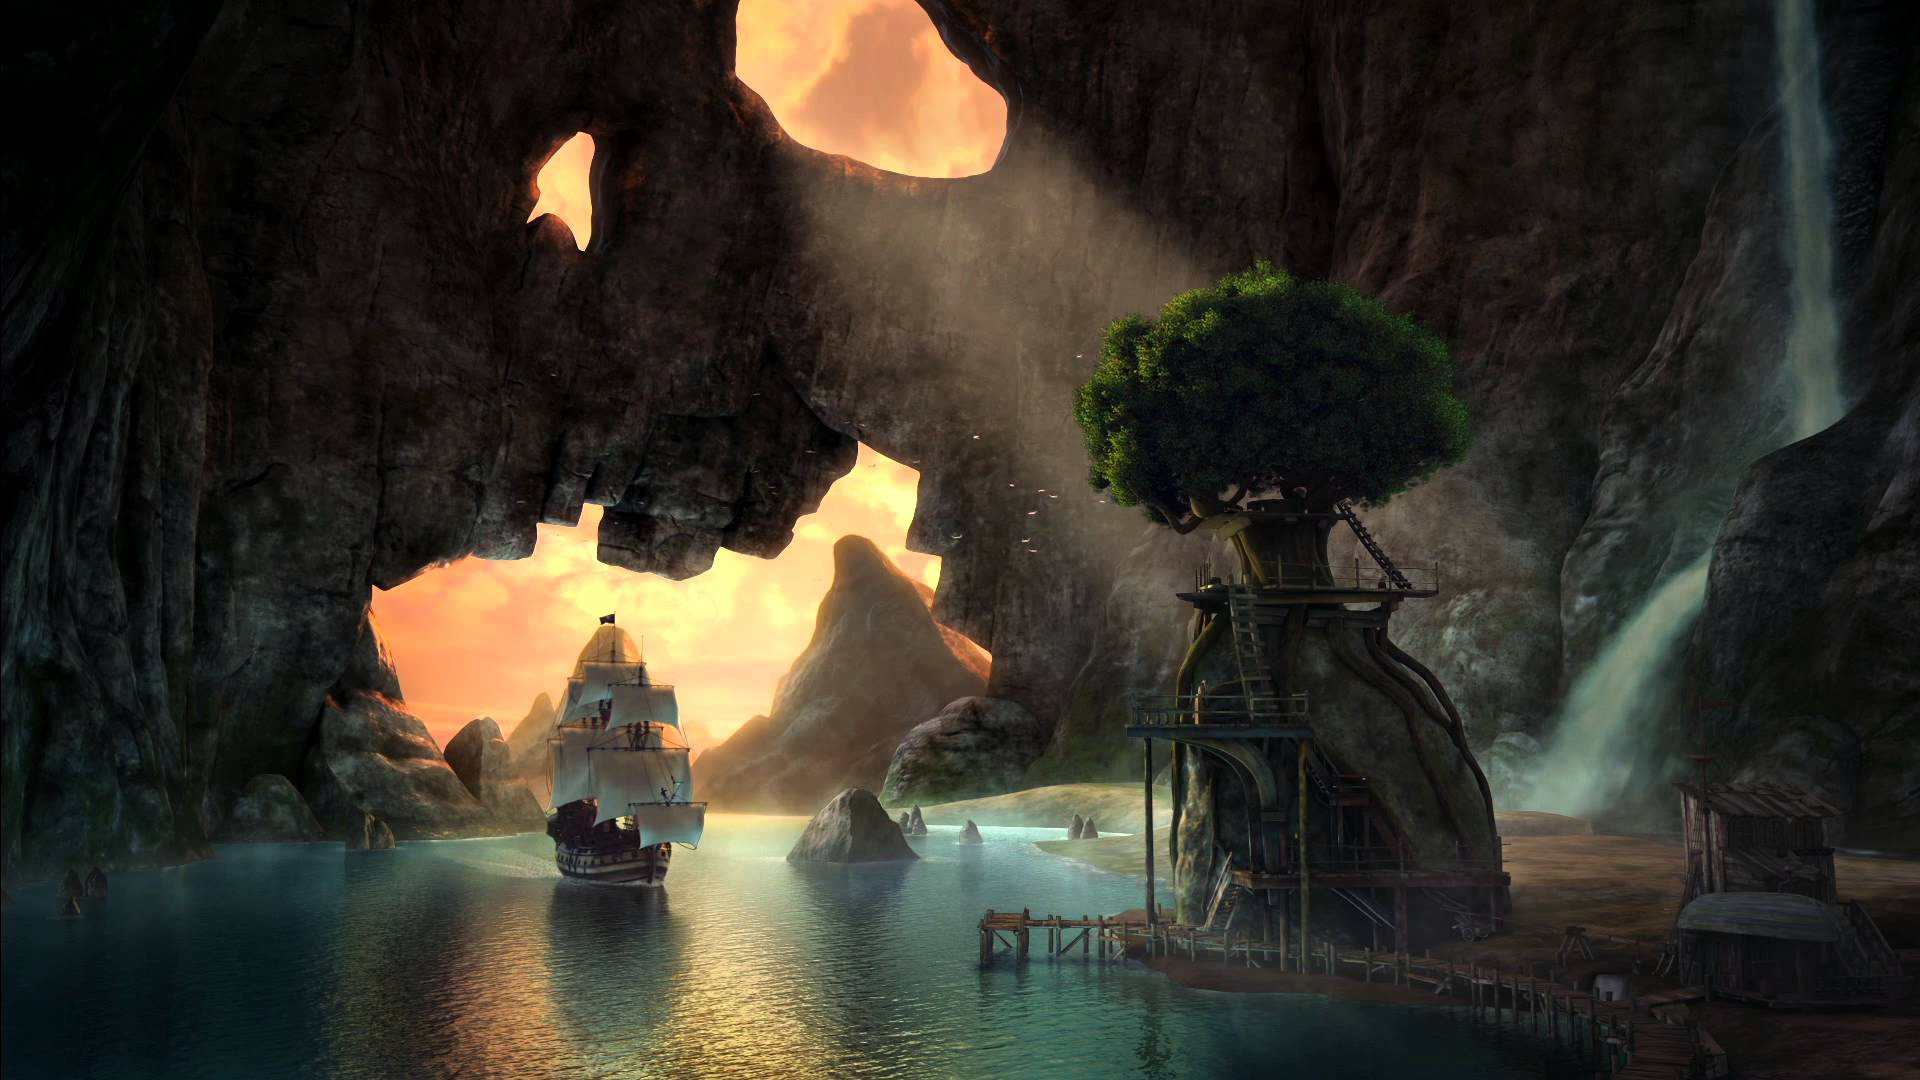 Tinker bell and the pirate fairy pirate ship in skull cave hd wallpaper background image - Pirate background ...